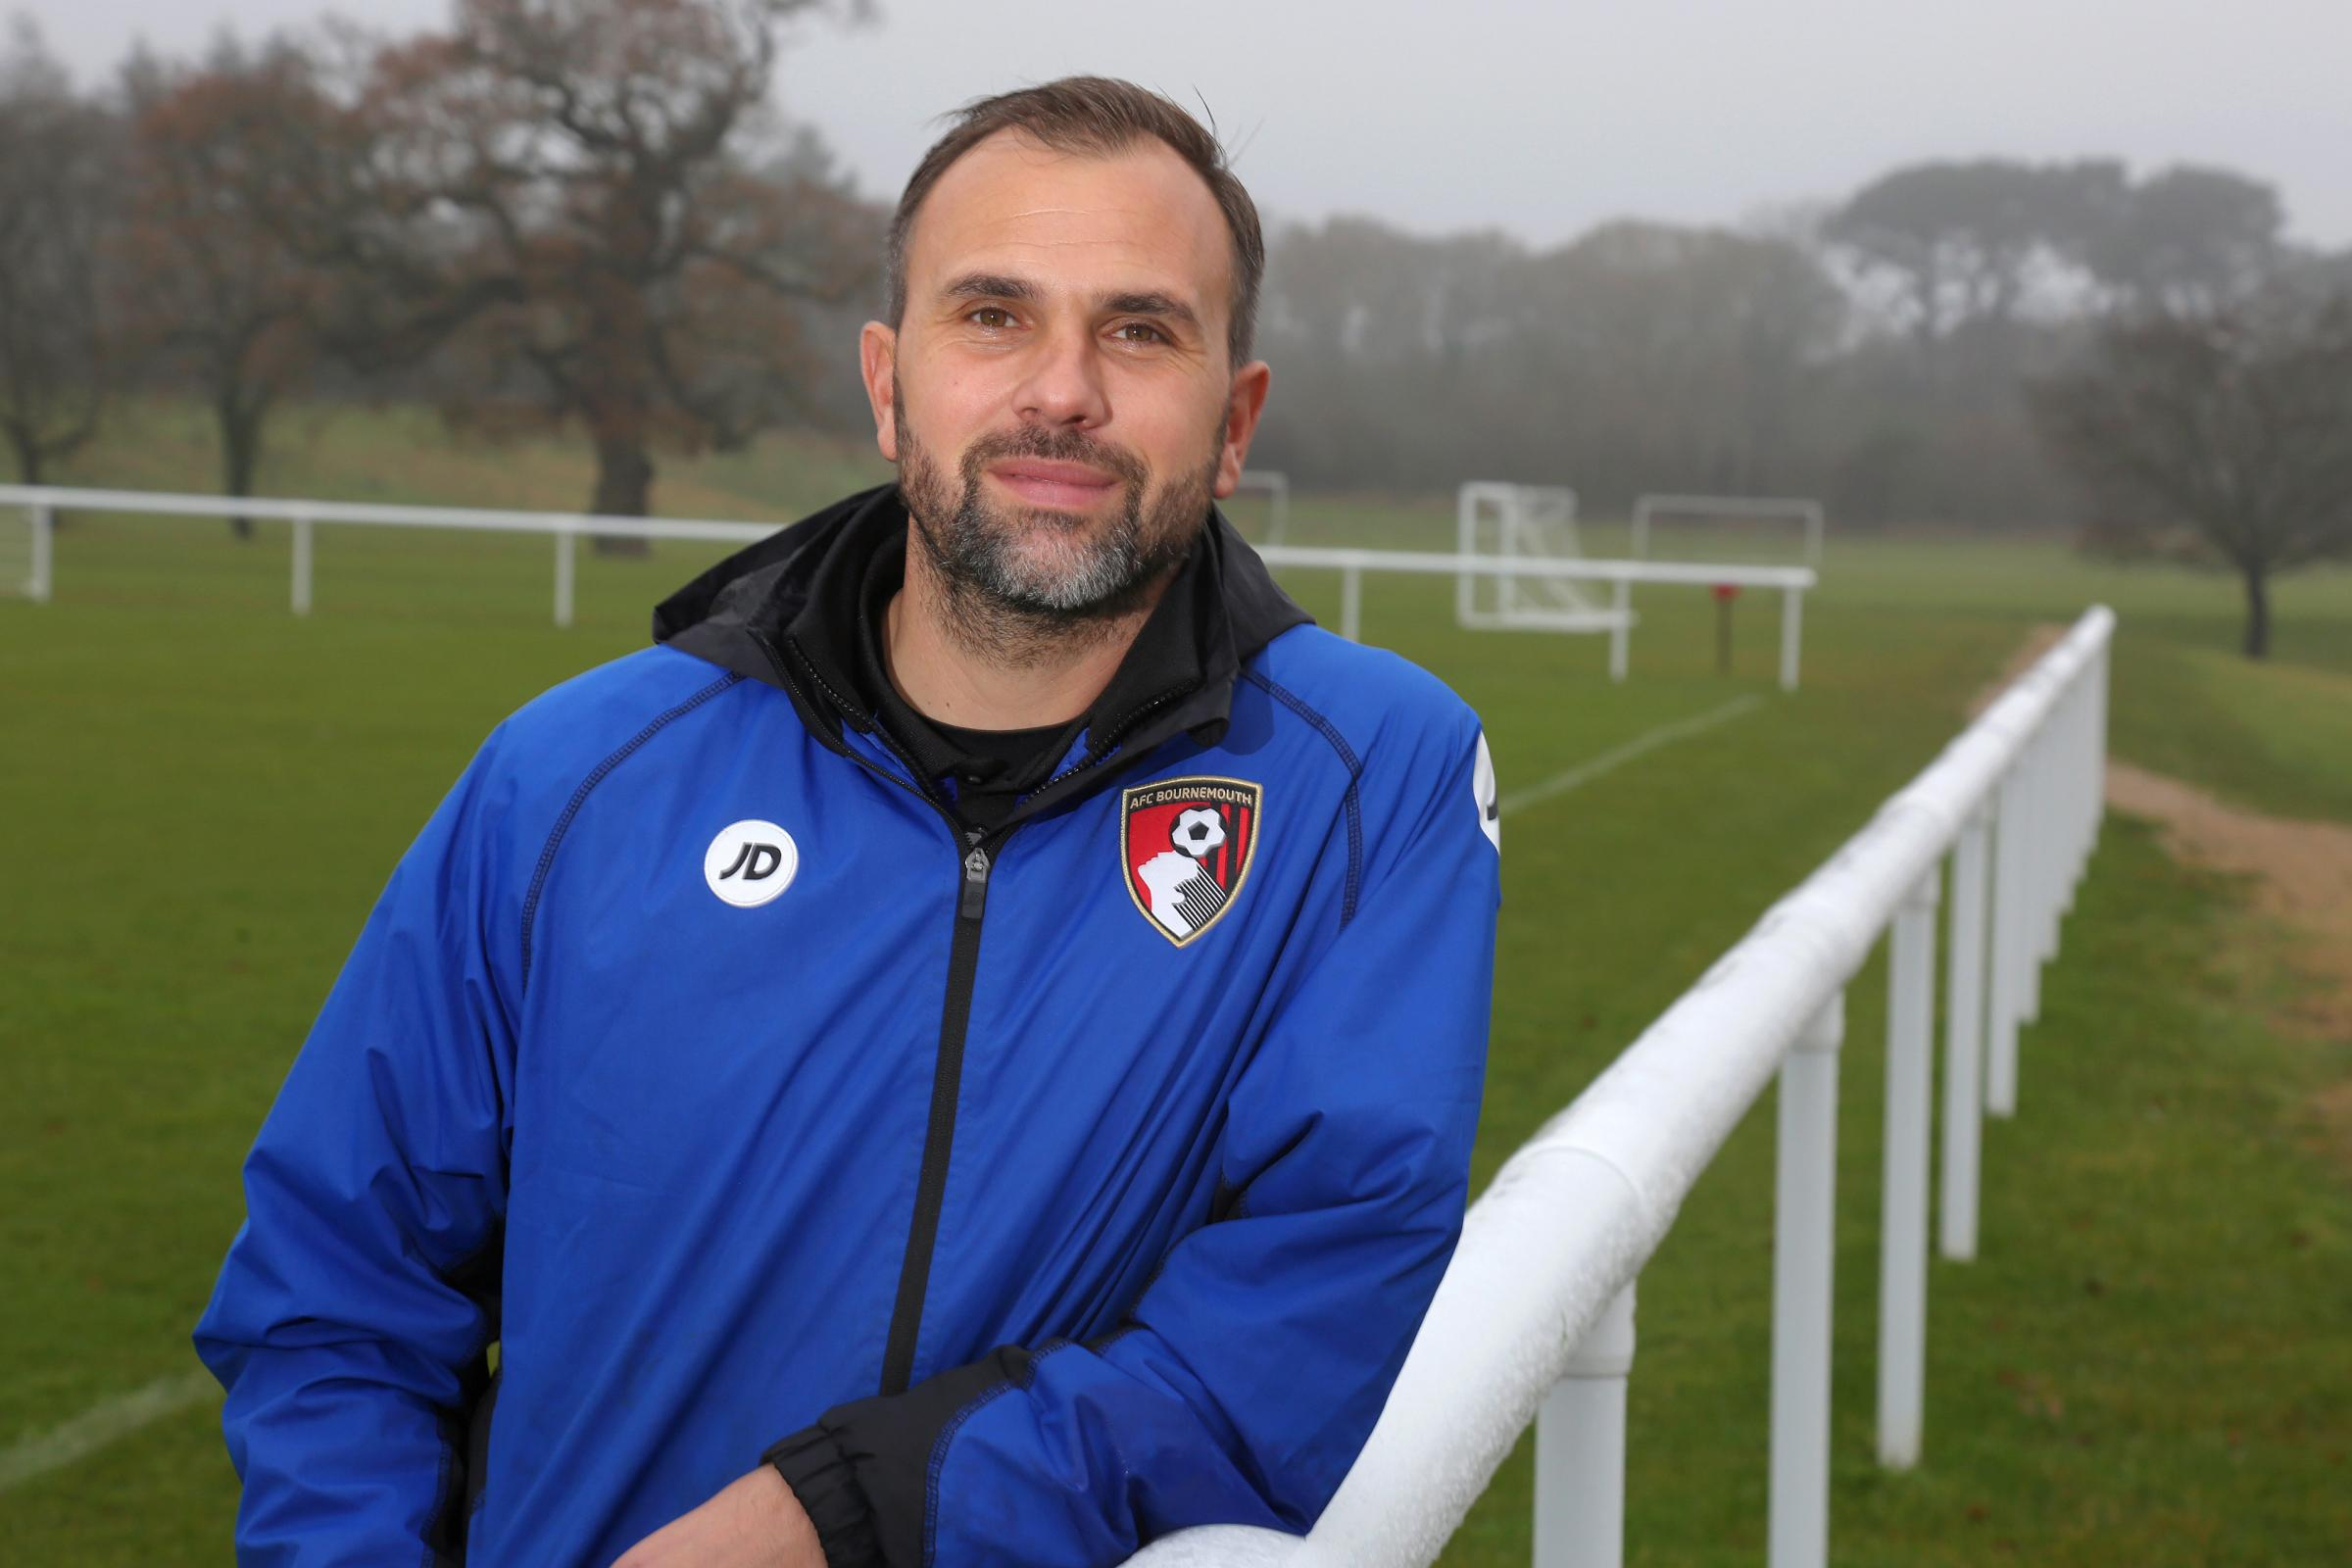 Fletcher named loan player manager as part of Cherries reshuffle